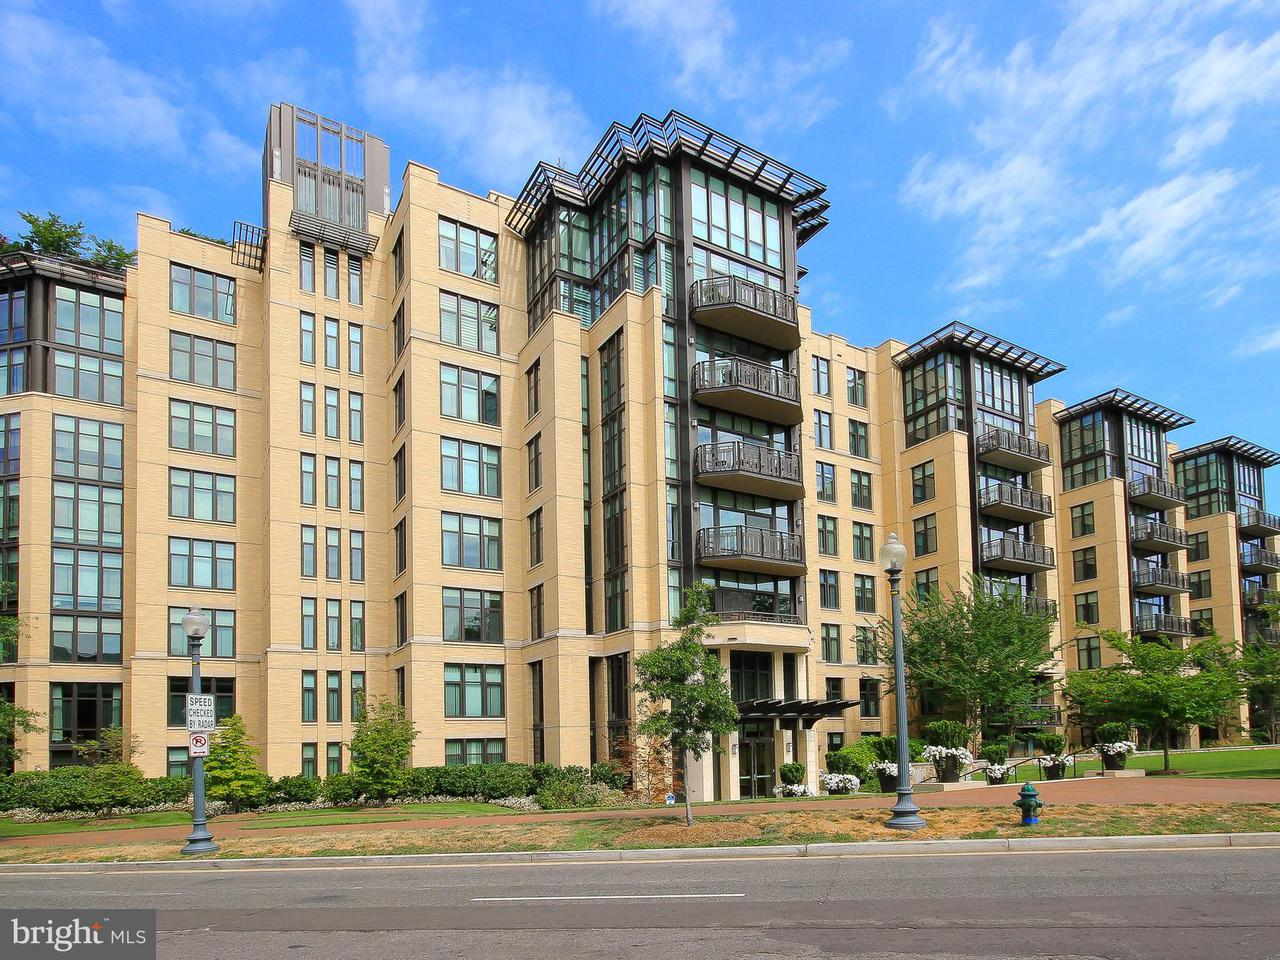 Condominium for Sale at 4301 Military Rd Nw #109 4301 Military Rd Nw #109 Washington, District Of Columbia 20015 United States